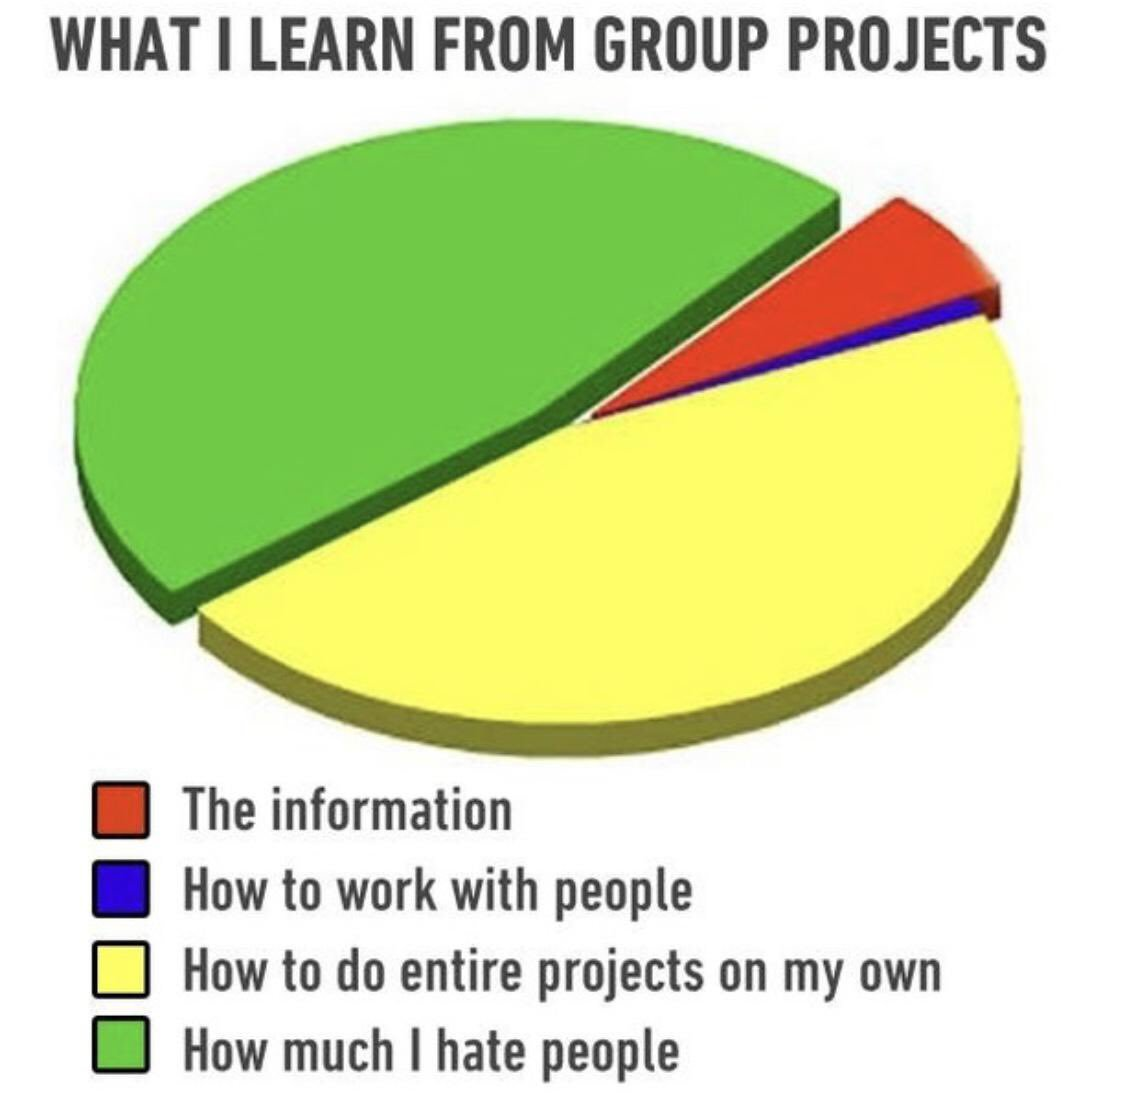 Group projects - meme